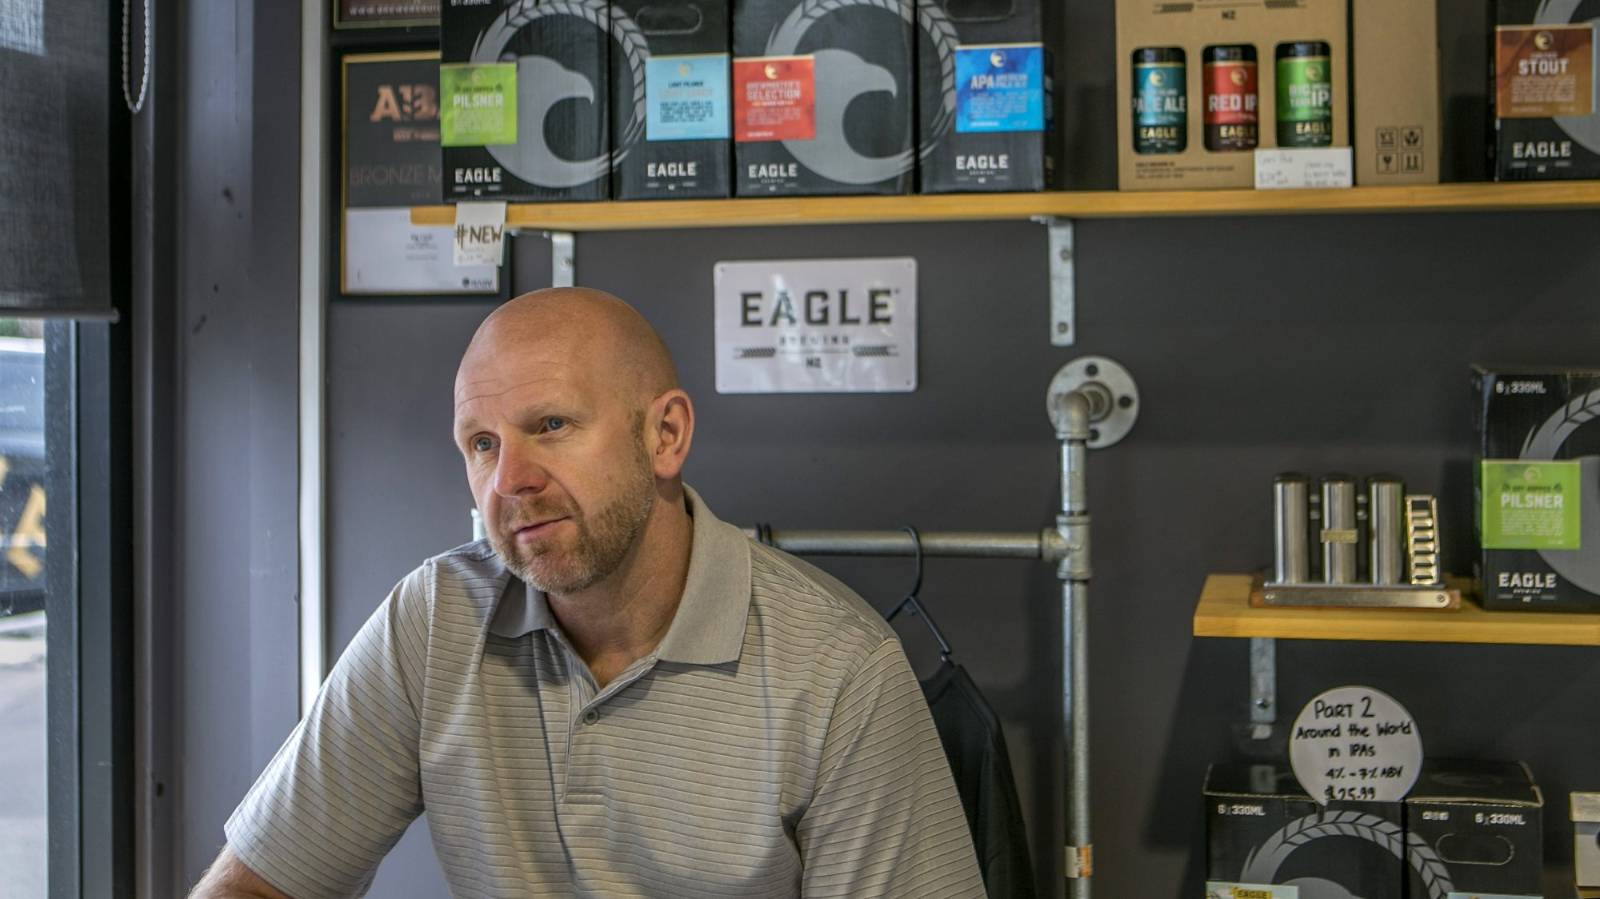 Canterbury brewery owner resigns from company after offensive social media post